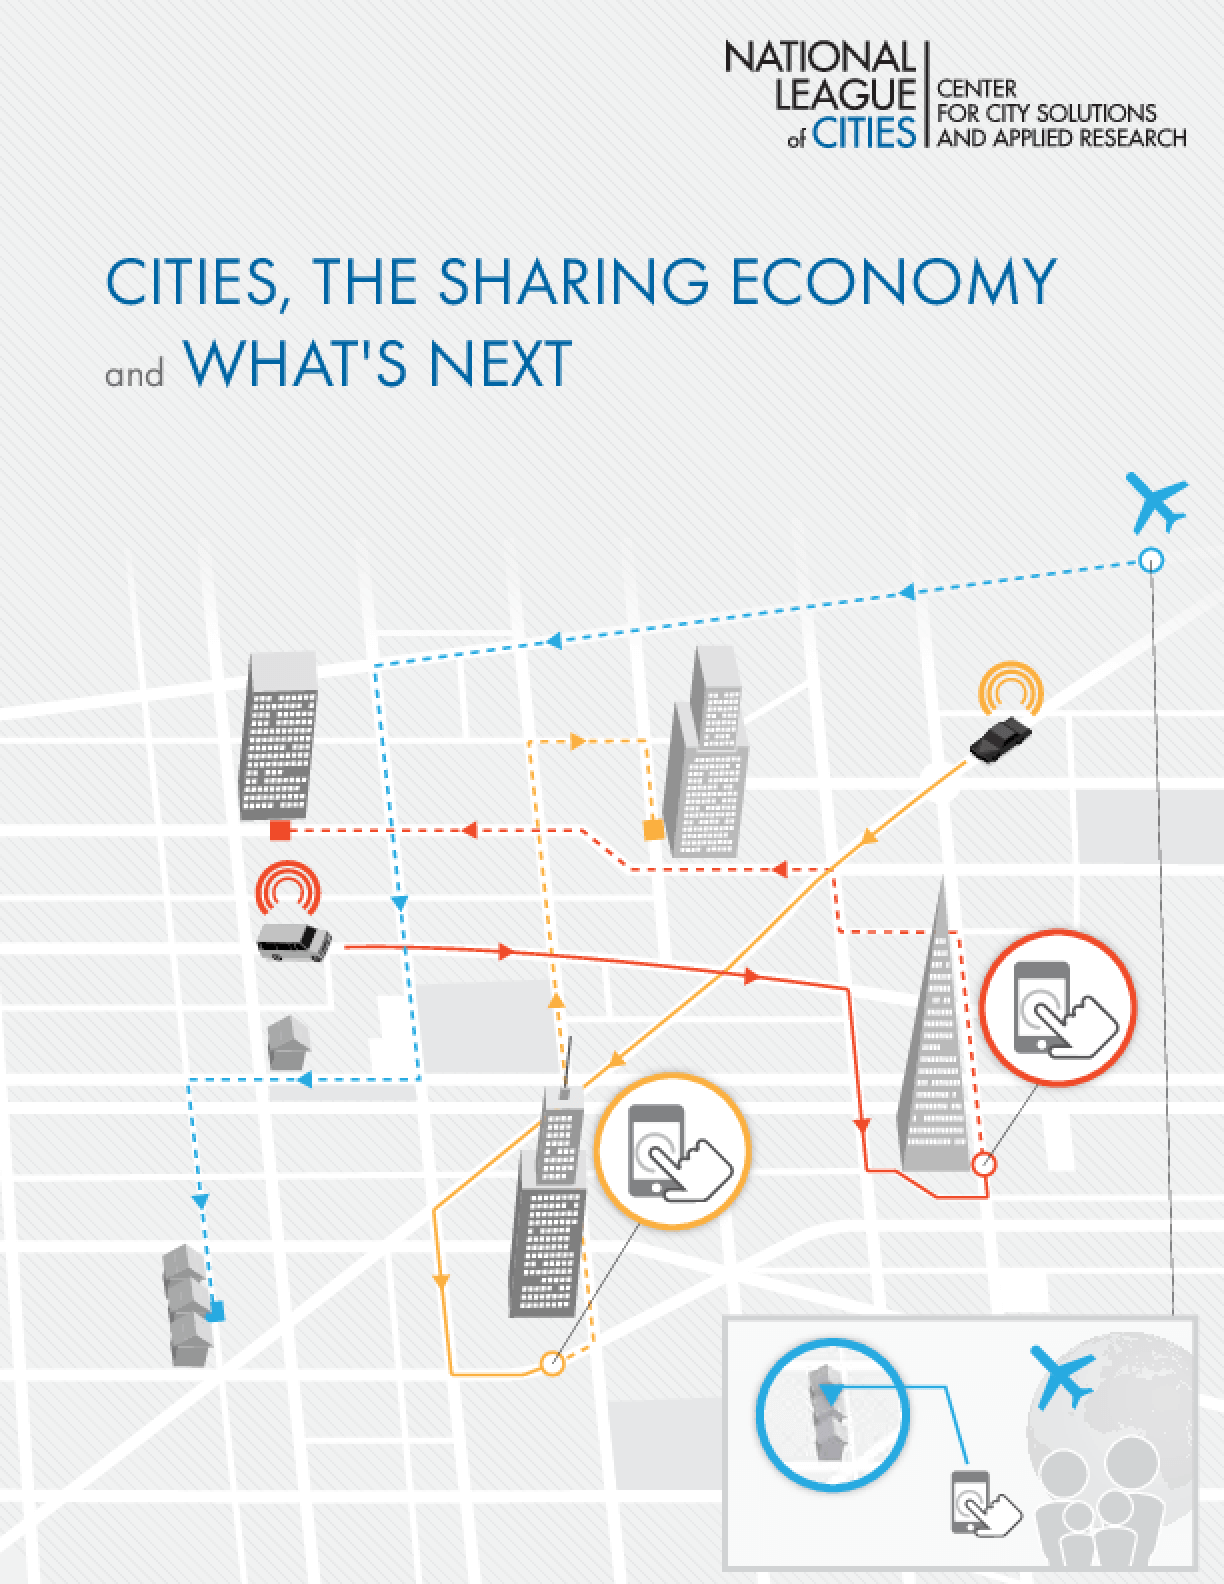 Cities, The Sharing Economy and What's Next